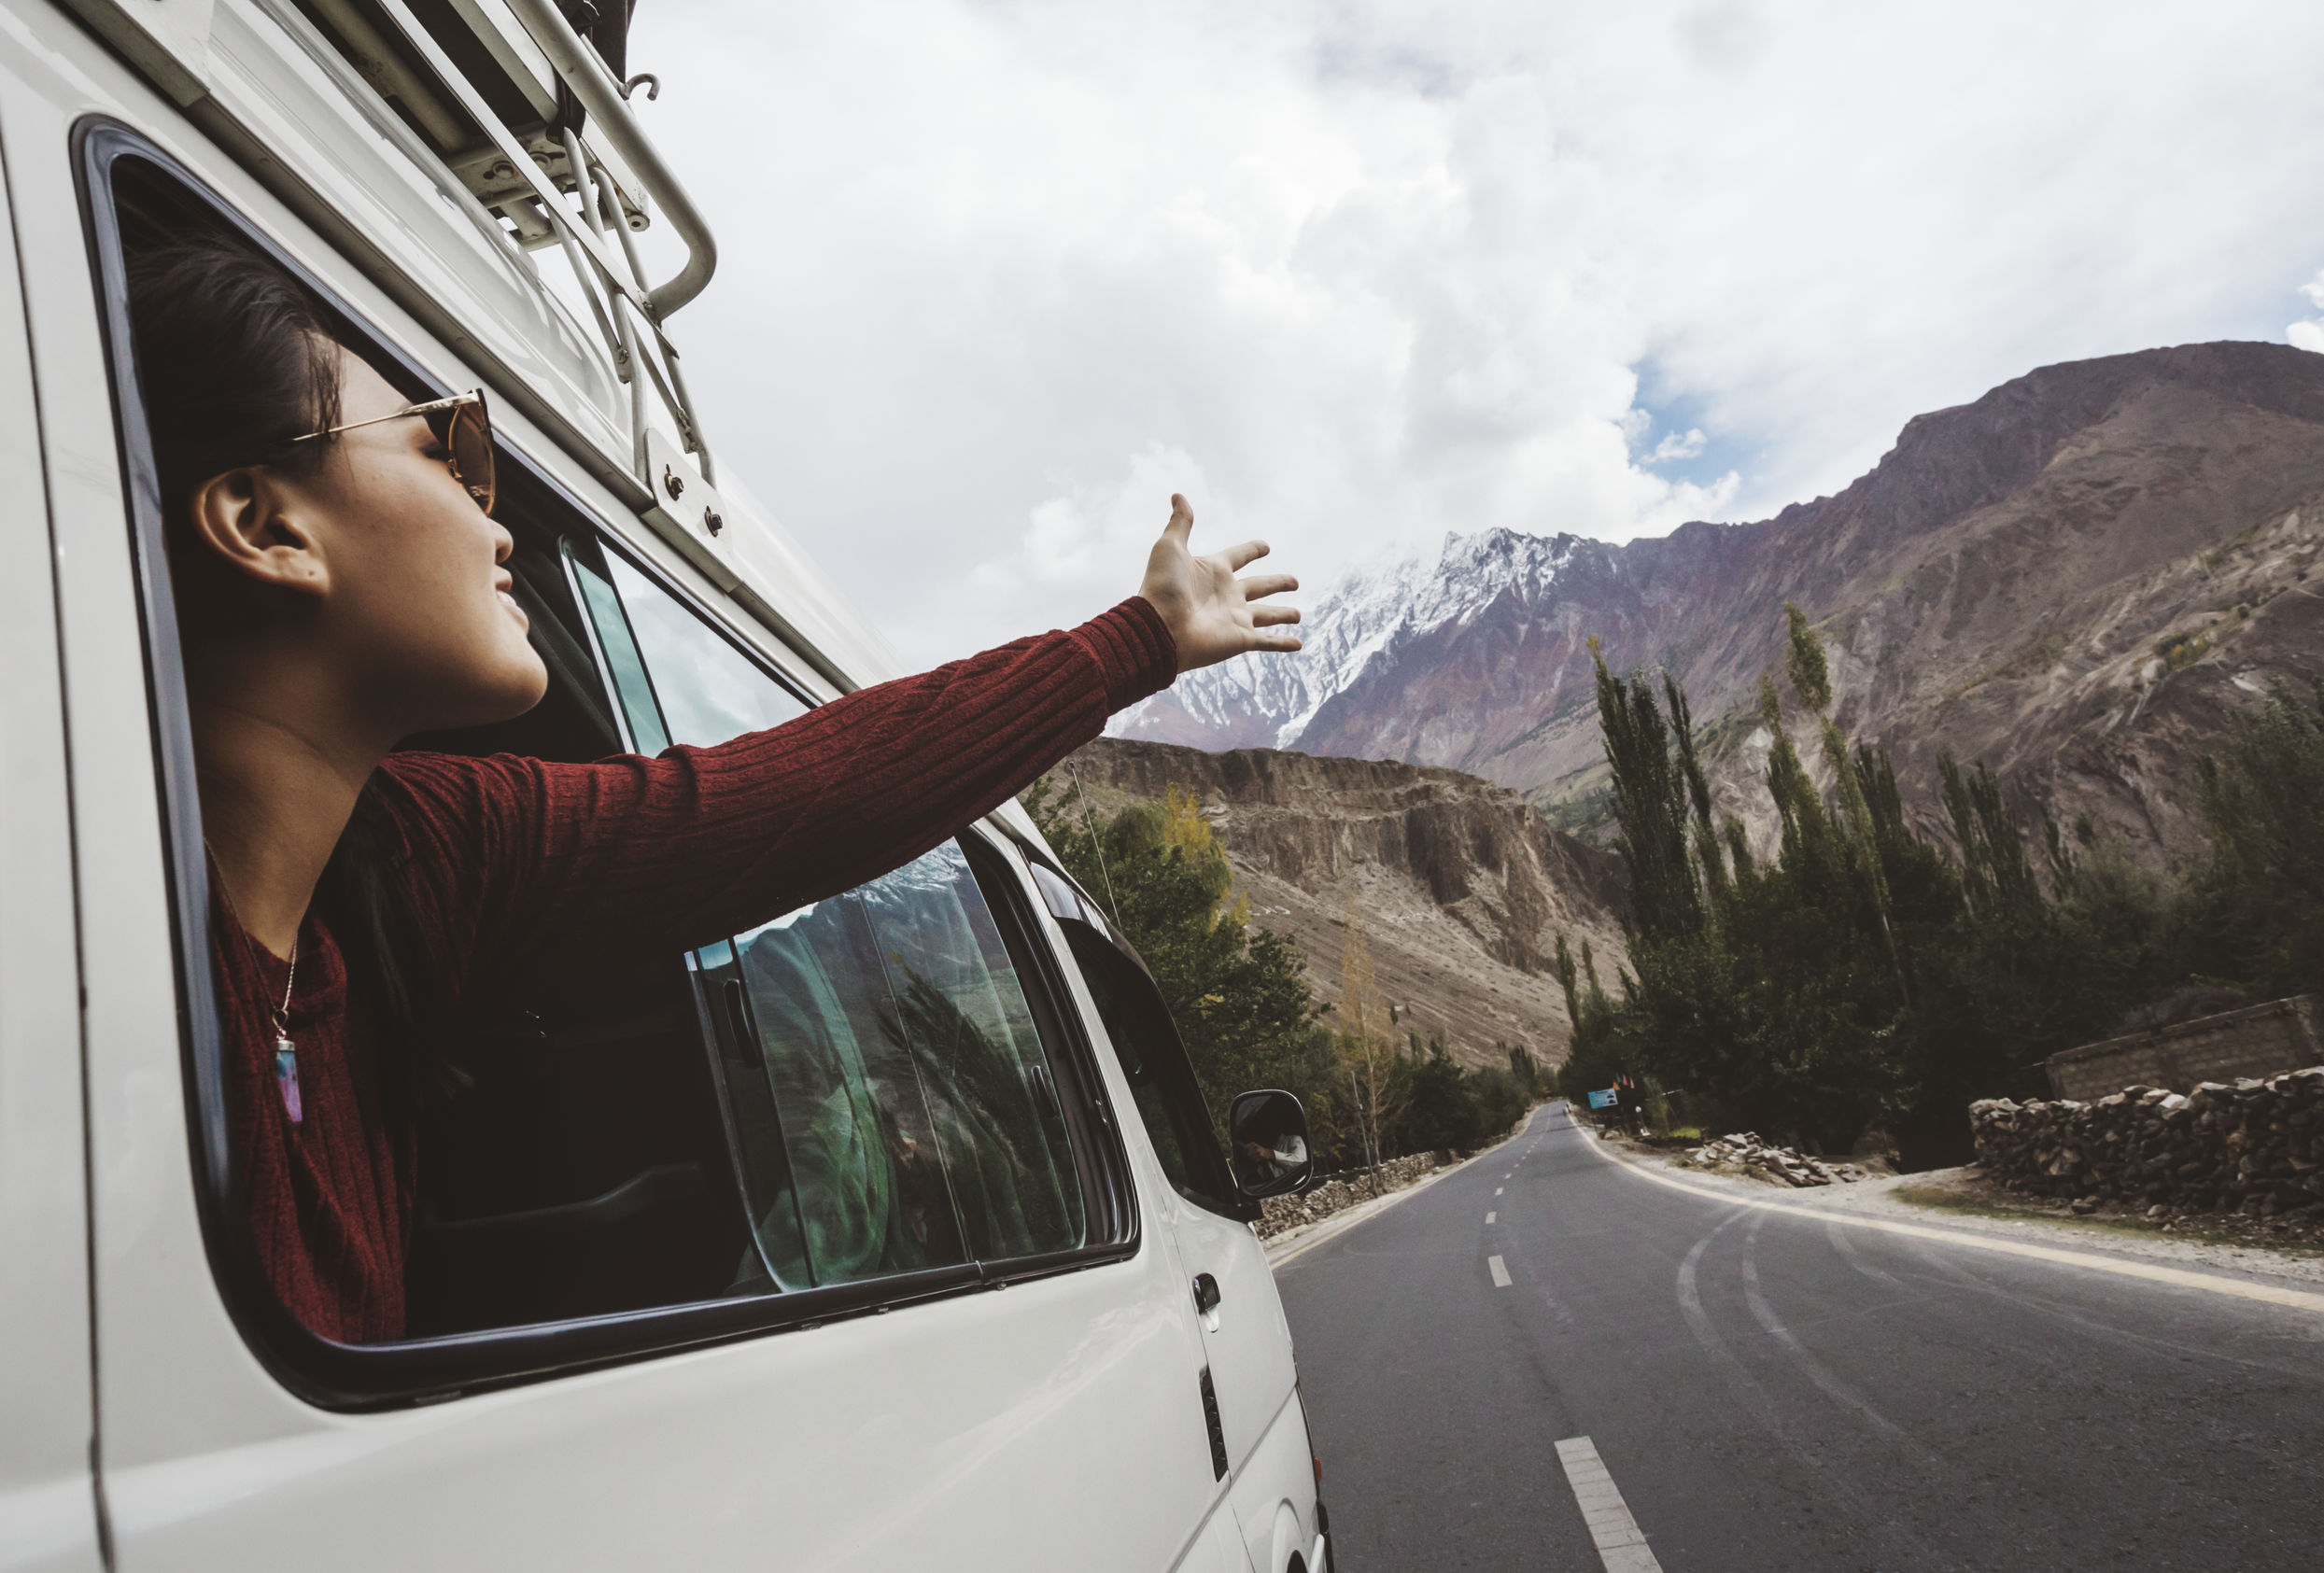 Woman enjoying the cool breeze from the car window